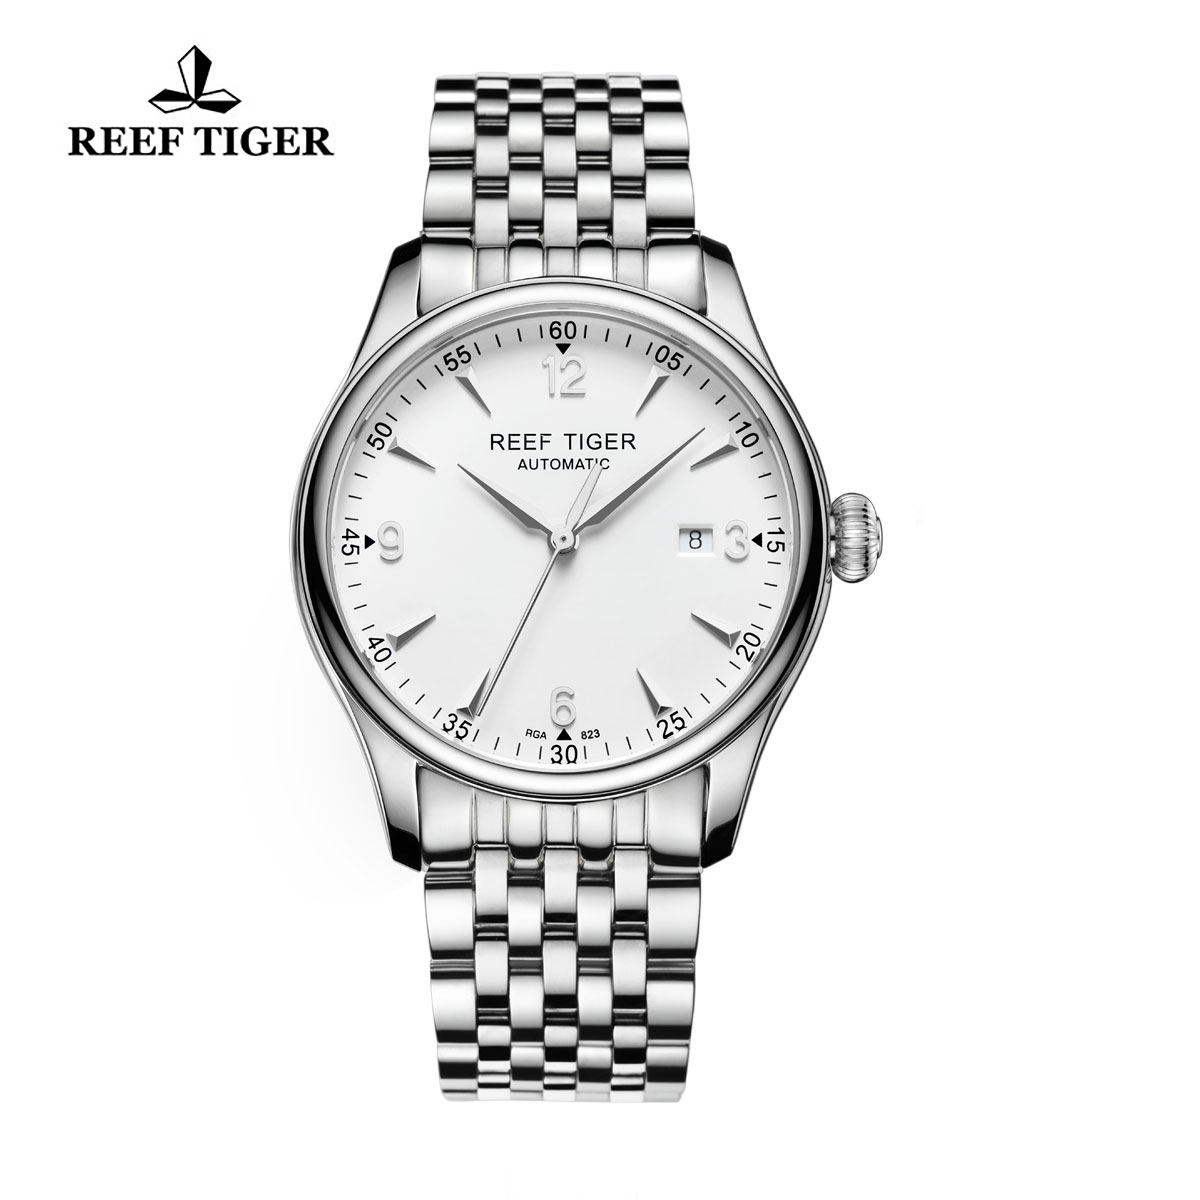 Reef Tiger Heritage Dress Automatic Watch White Dial Stainless Steel Case RGA823-YWY